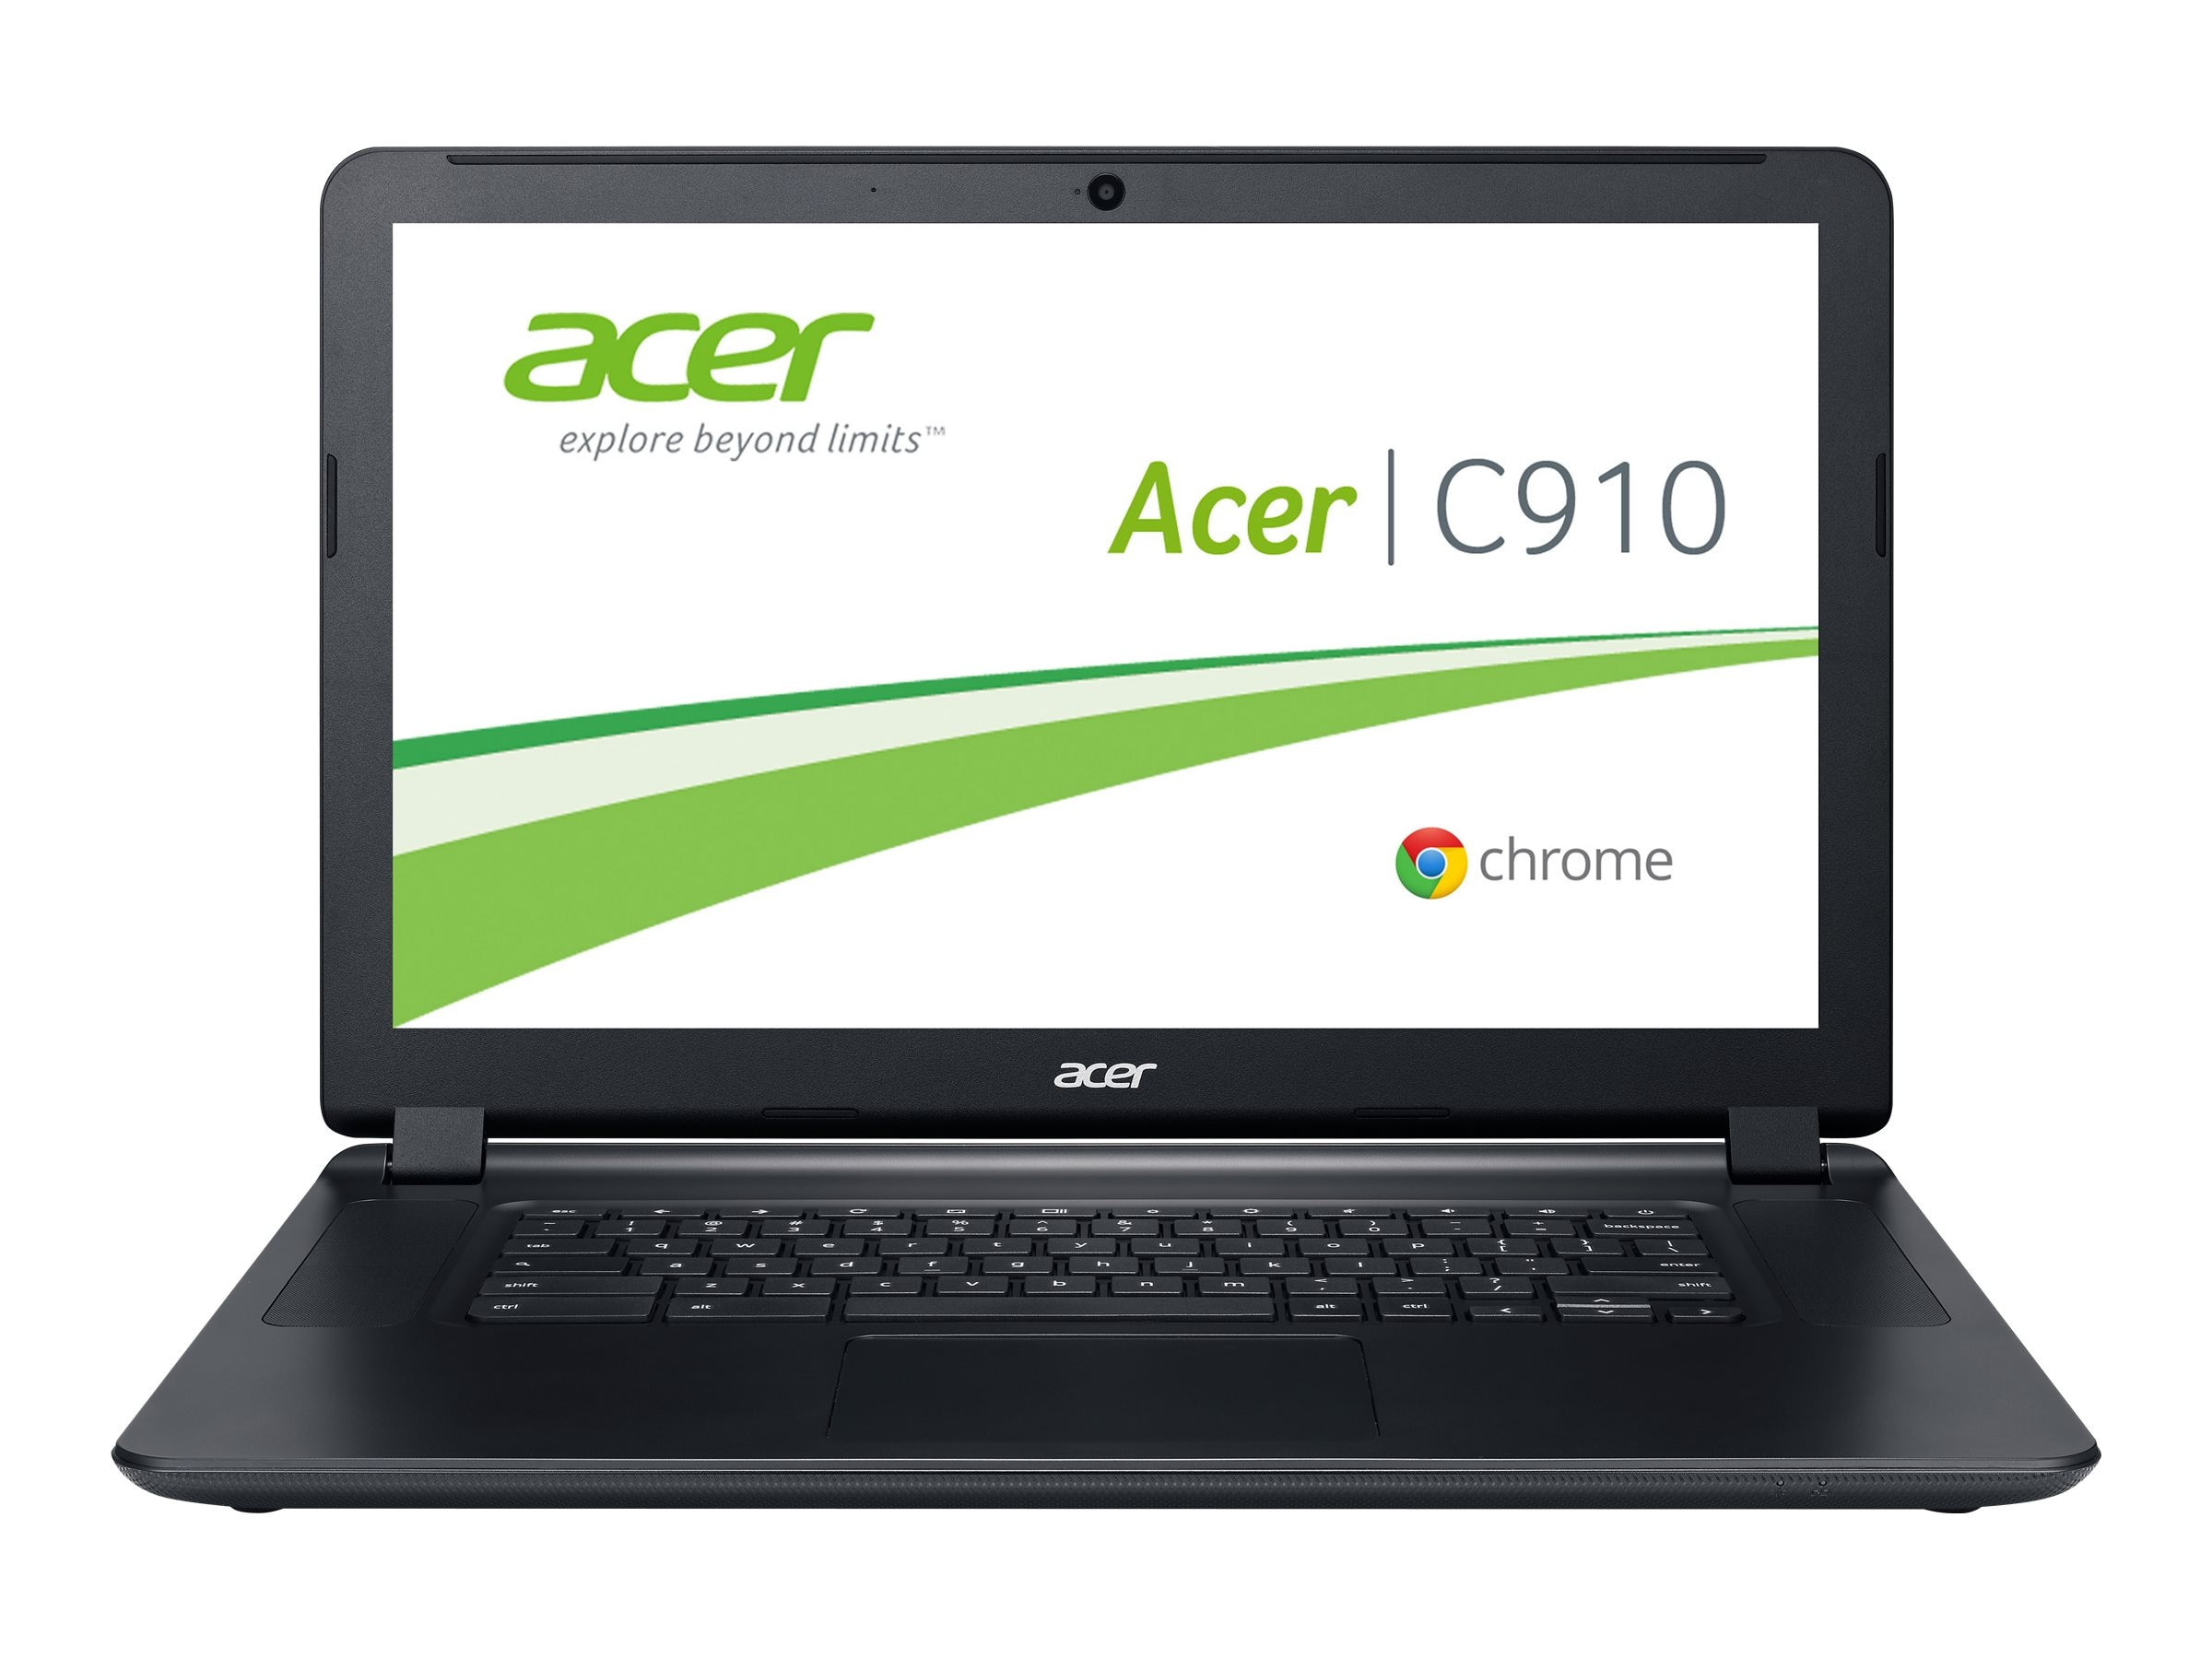 Acer Chromebook C910-54M1 2.2GHz Core i5 15.6in display, NX.EF3AA.011